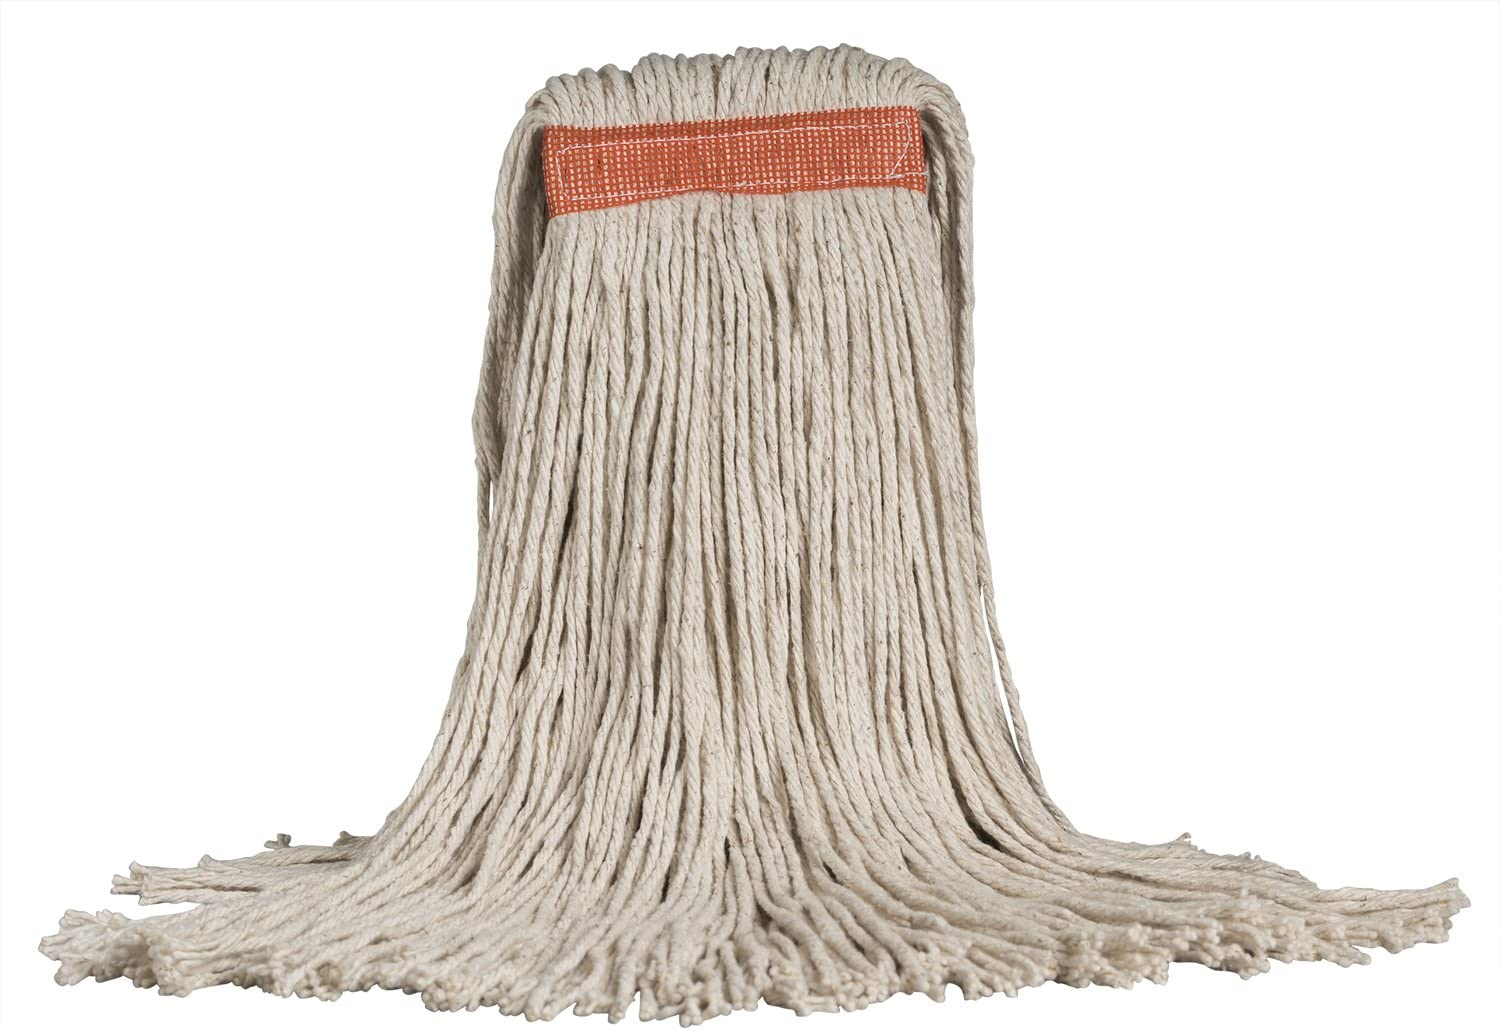 M2 Professional Cotton 32oz Cut End Mop Replacement Head 1 5 Headband Case Of 12 For Industrial Commercial Home Use Hardwood Tile Etc Kitchen Dining